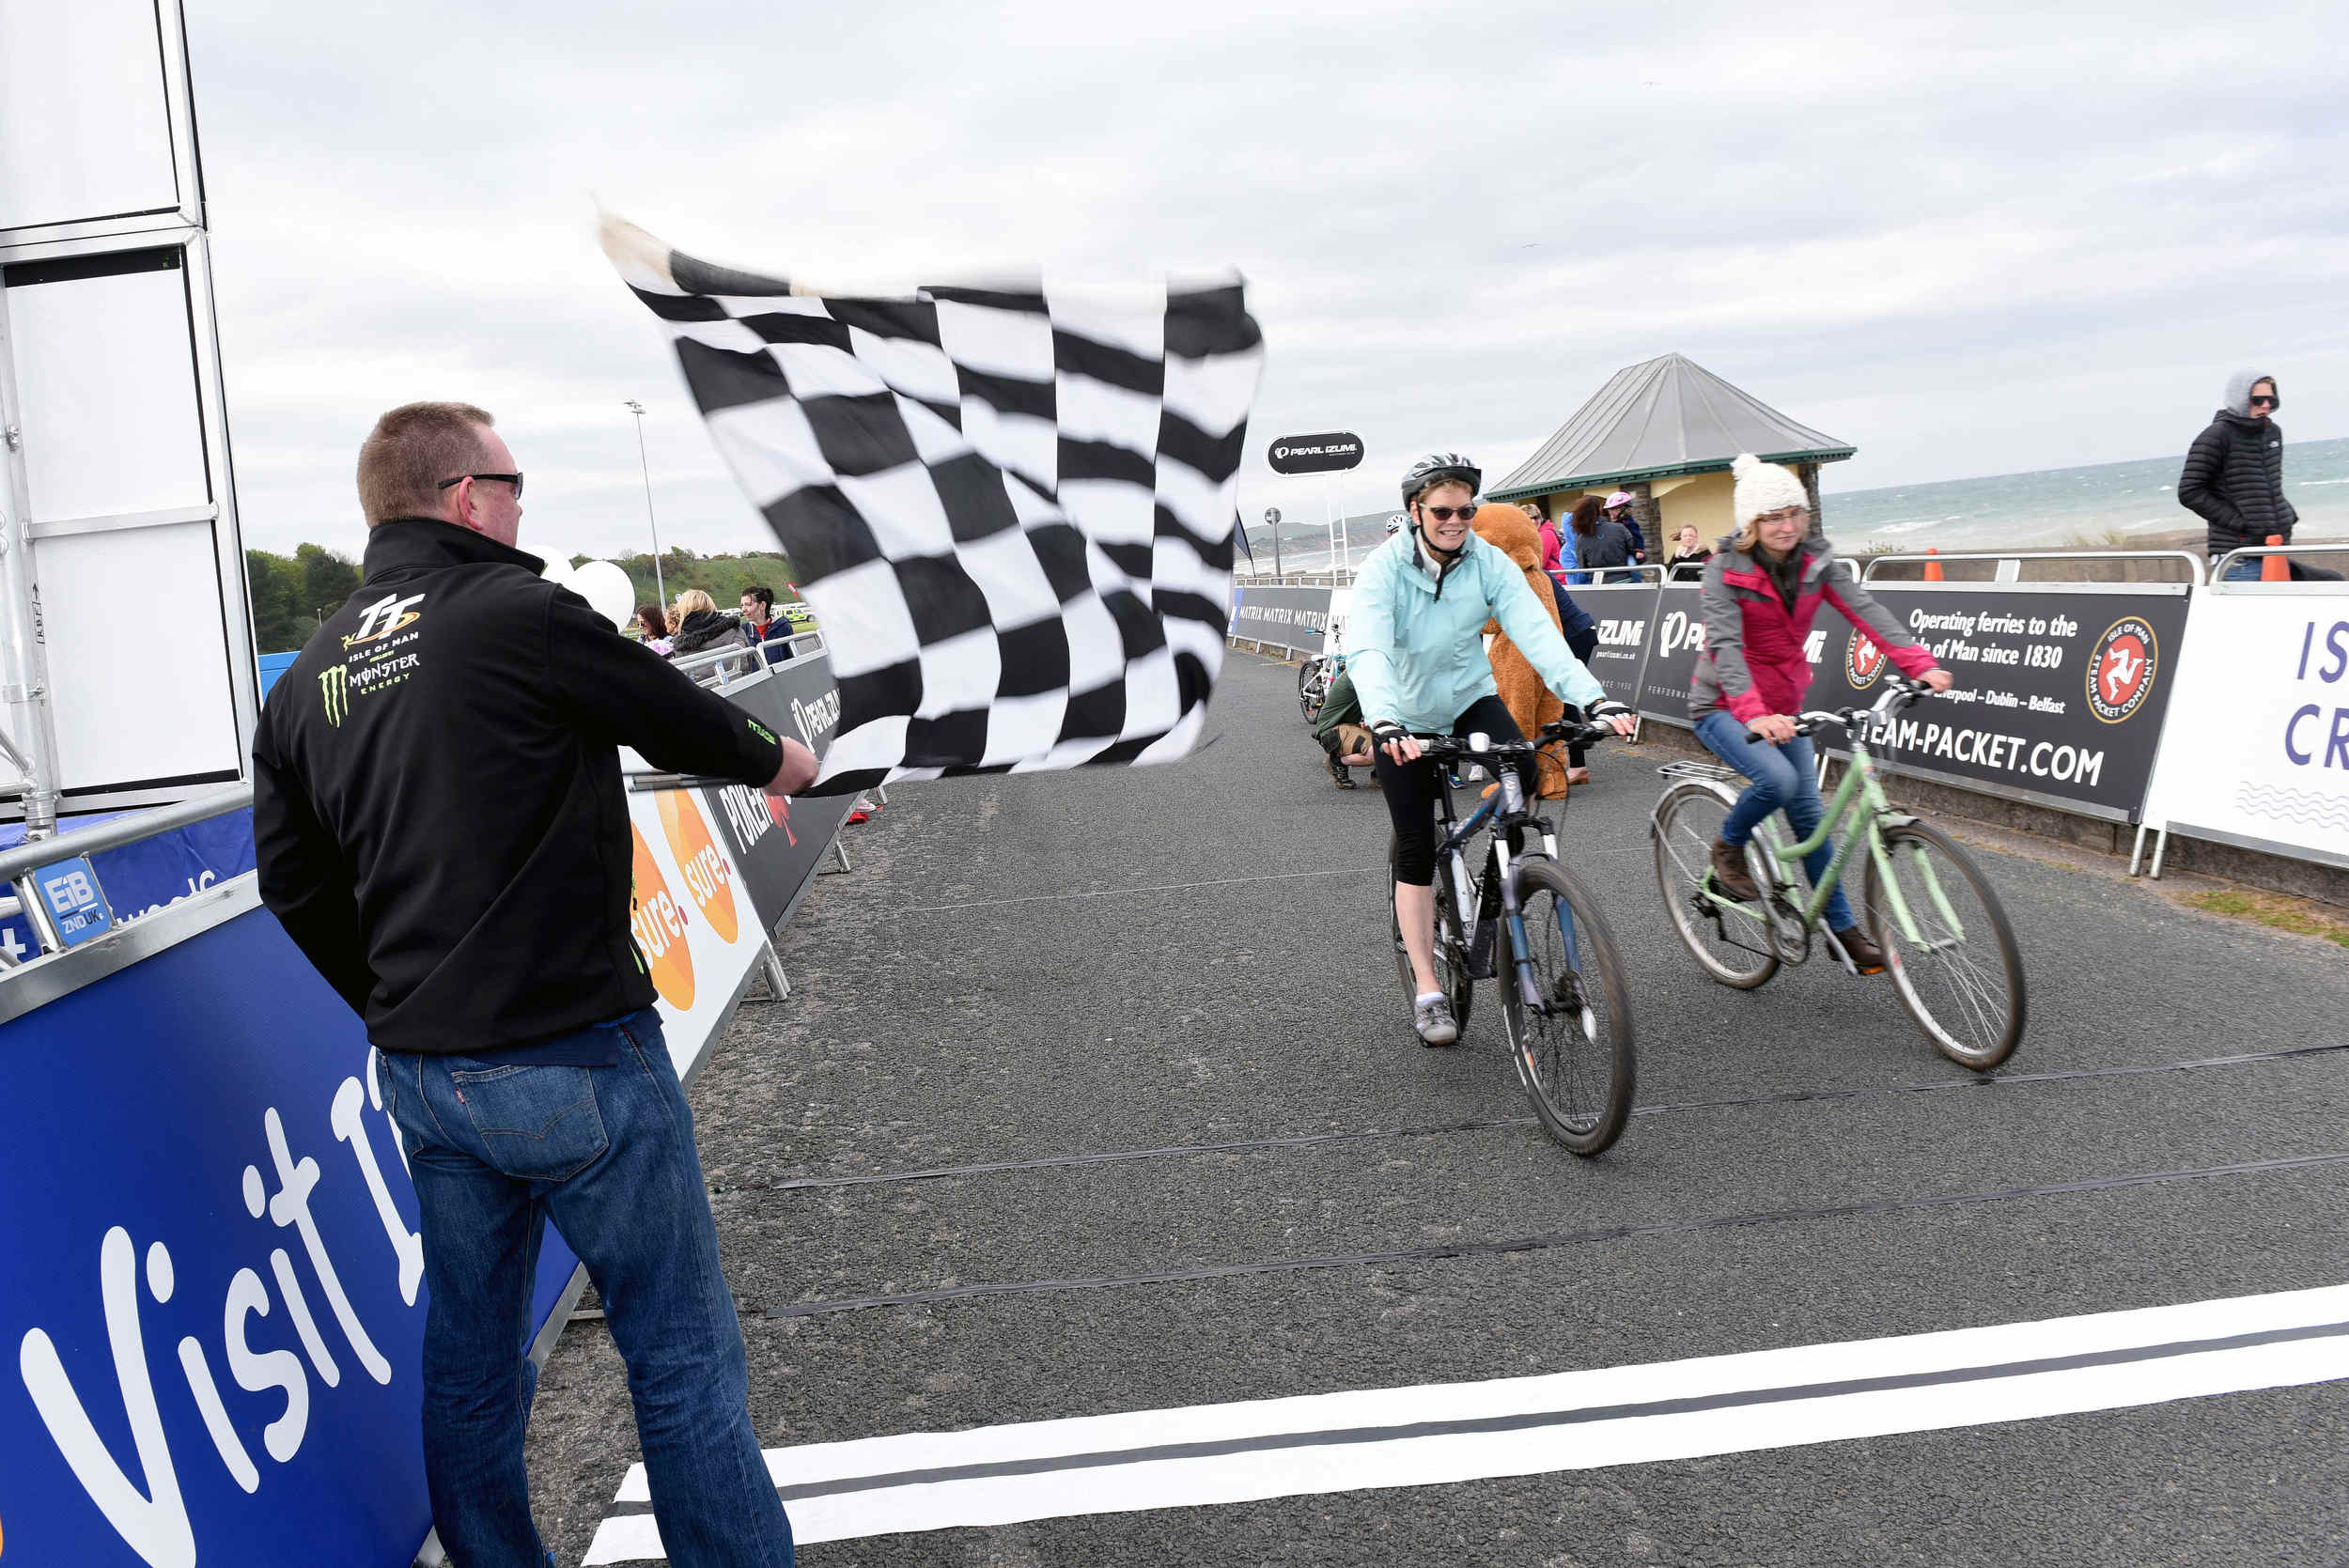 Day Two of Isle of Man Cyclefest 2016 on Friday, May 13. Based around Mooragh Promenade in Ramsey, included a fundraising fun family ride around the racecourse raising money for Rebecca House